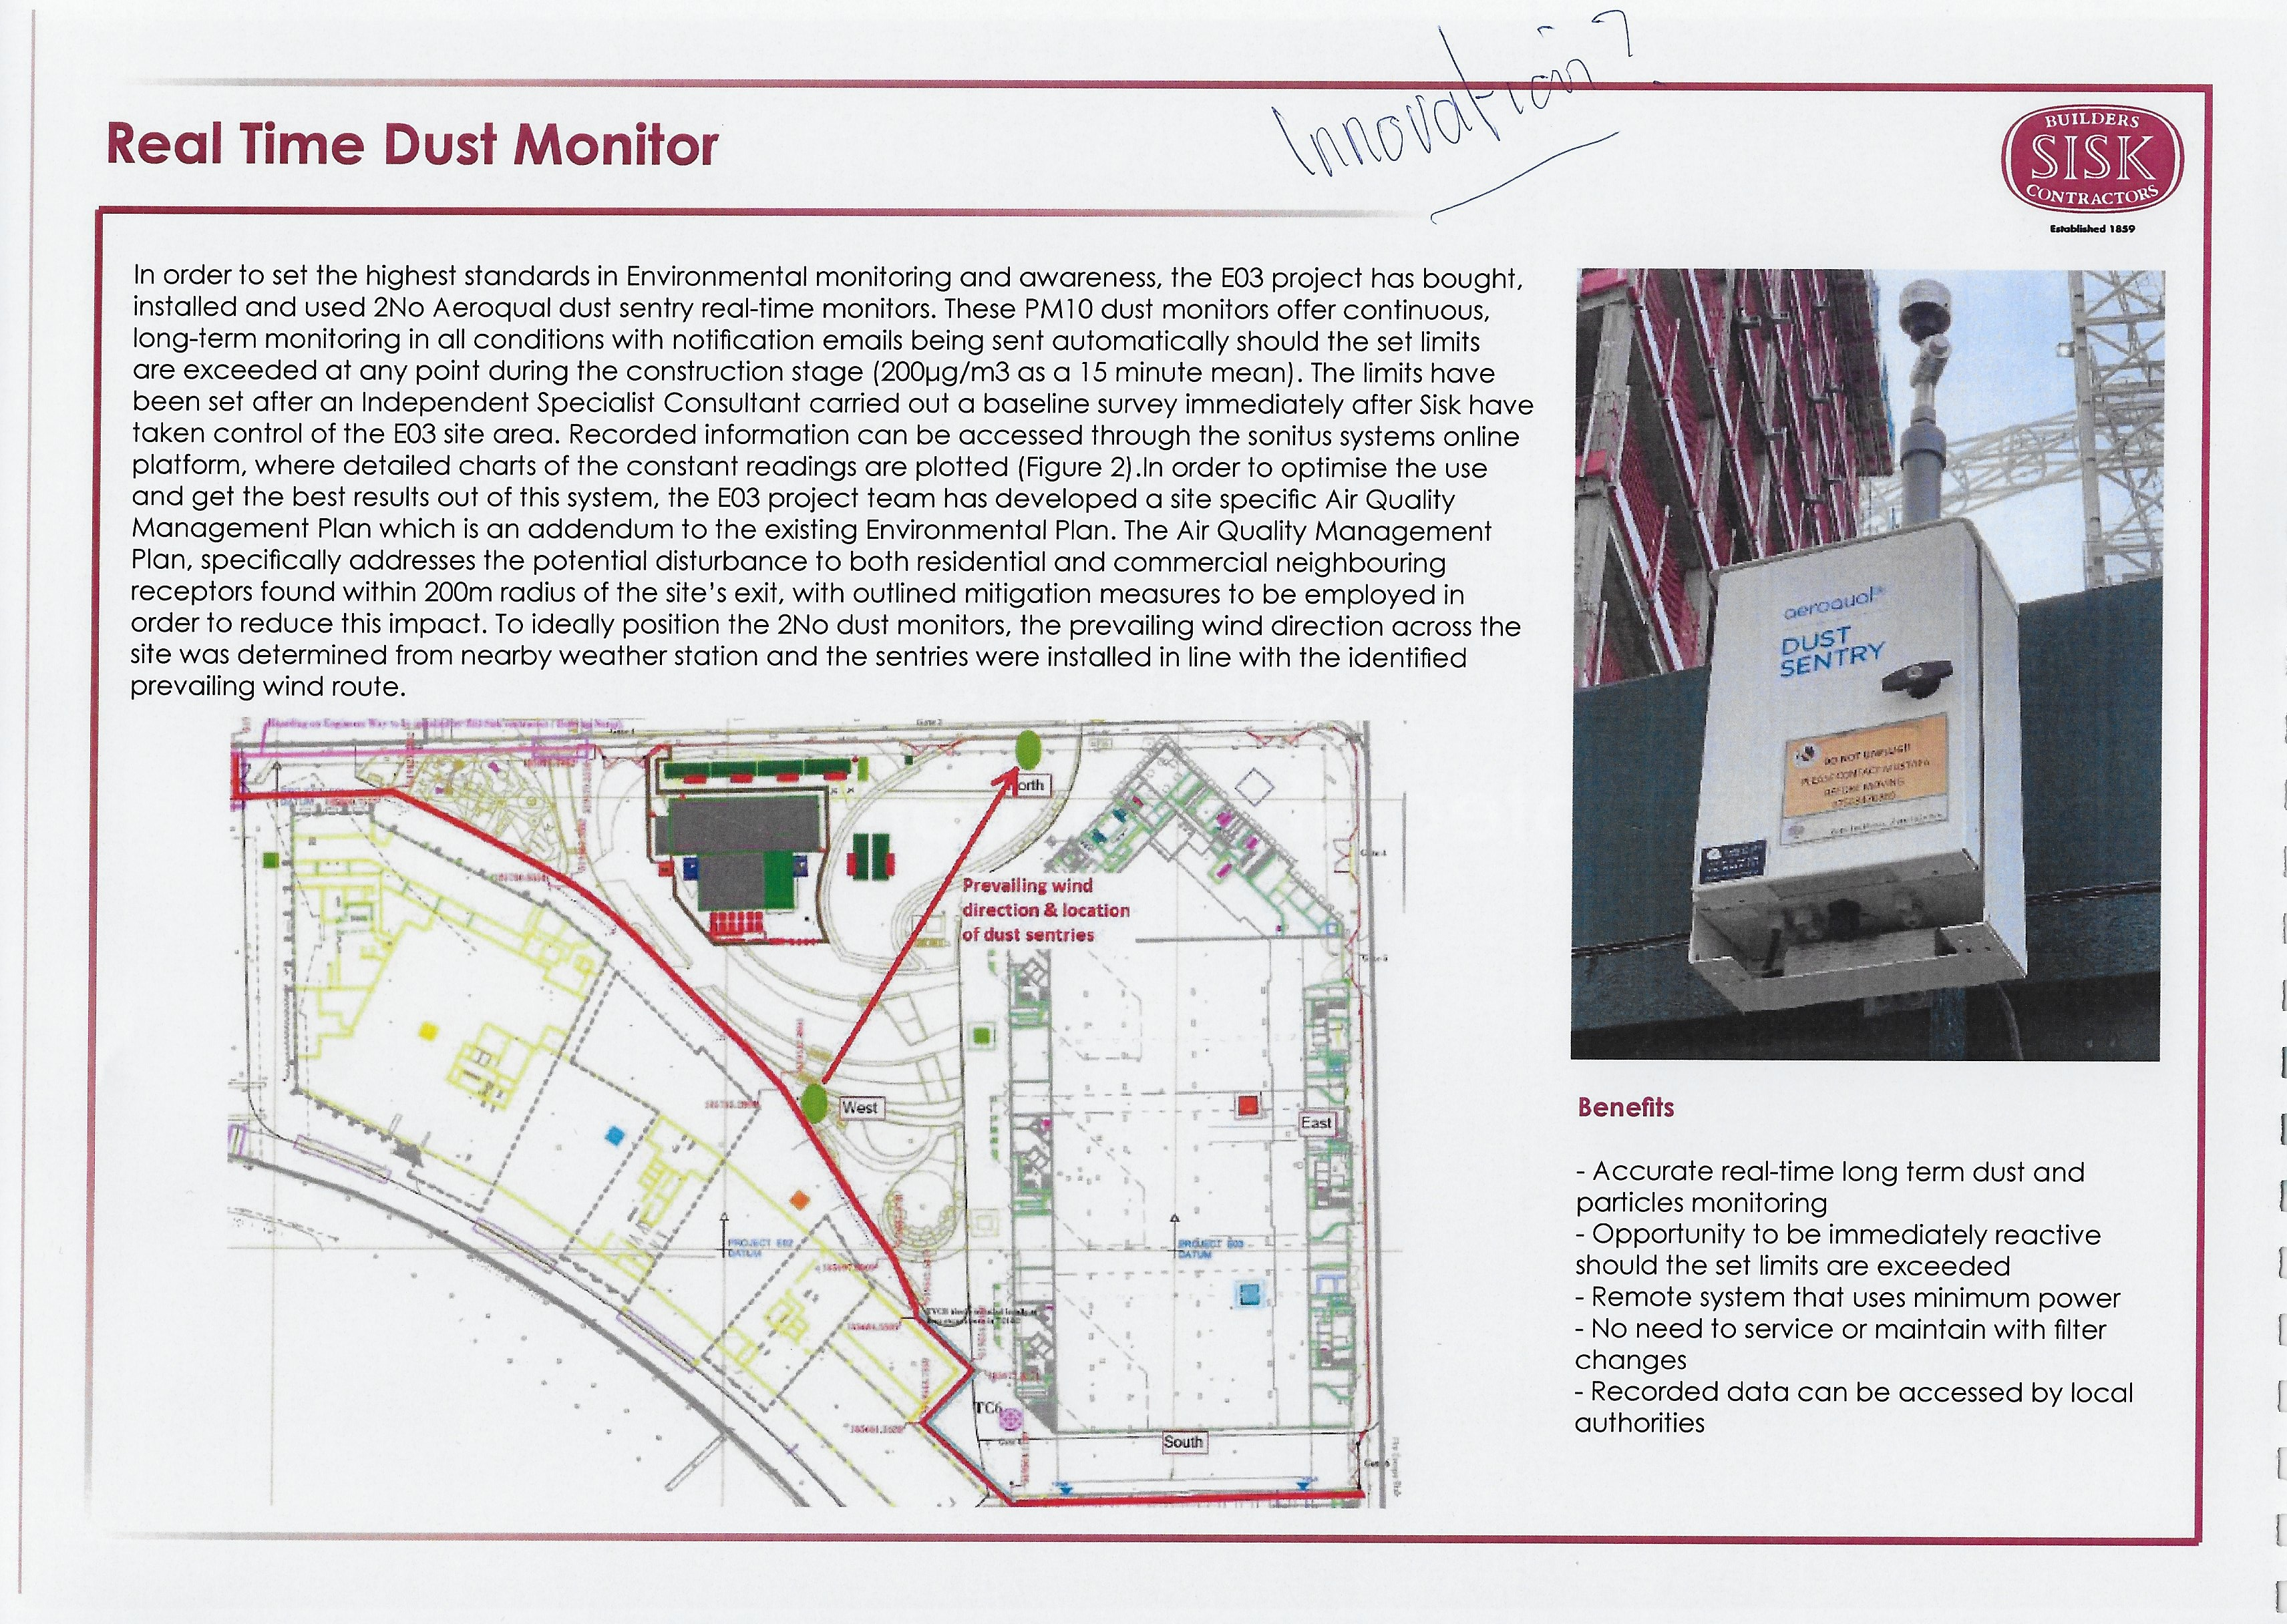 PM10 Real Time Dust Monitors Best Practice Hub